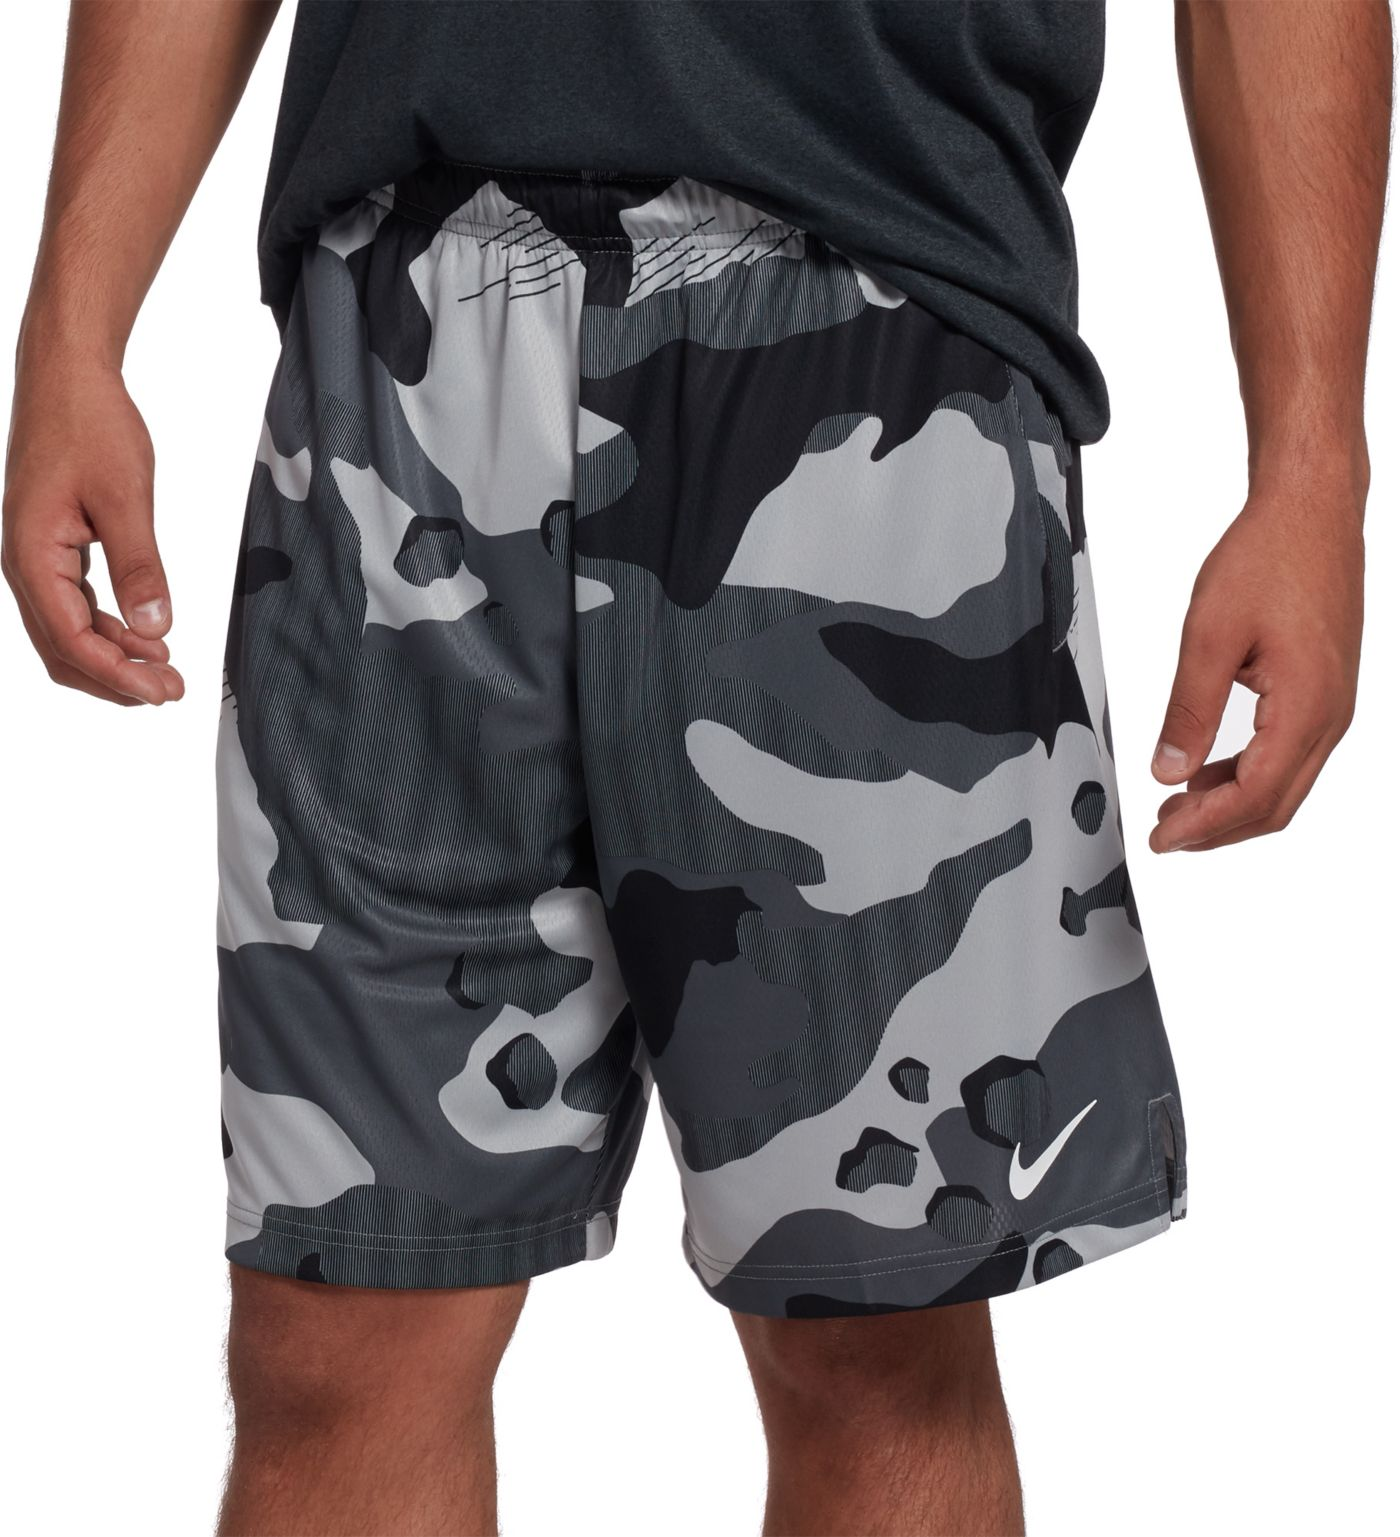 Nike Men's Dri-FIT Camo Training Shorts